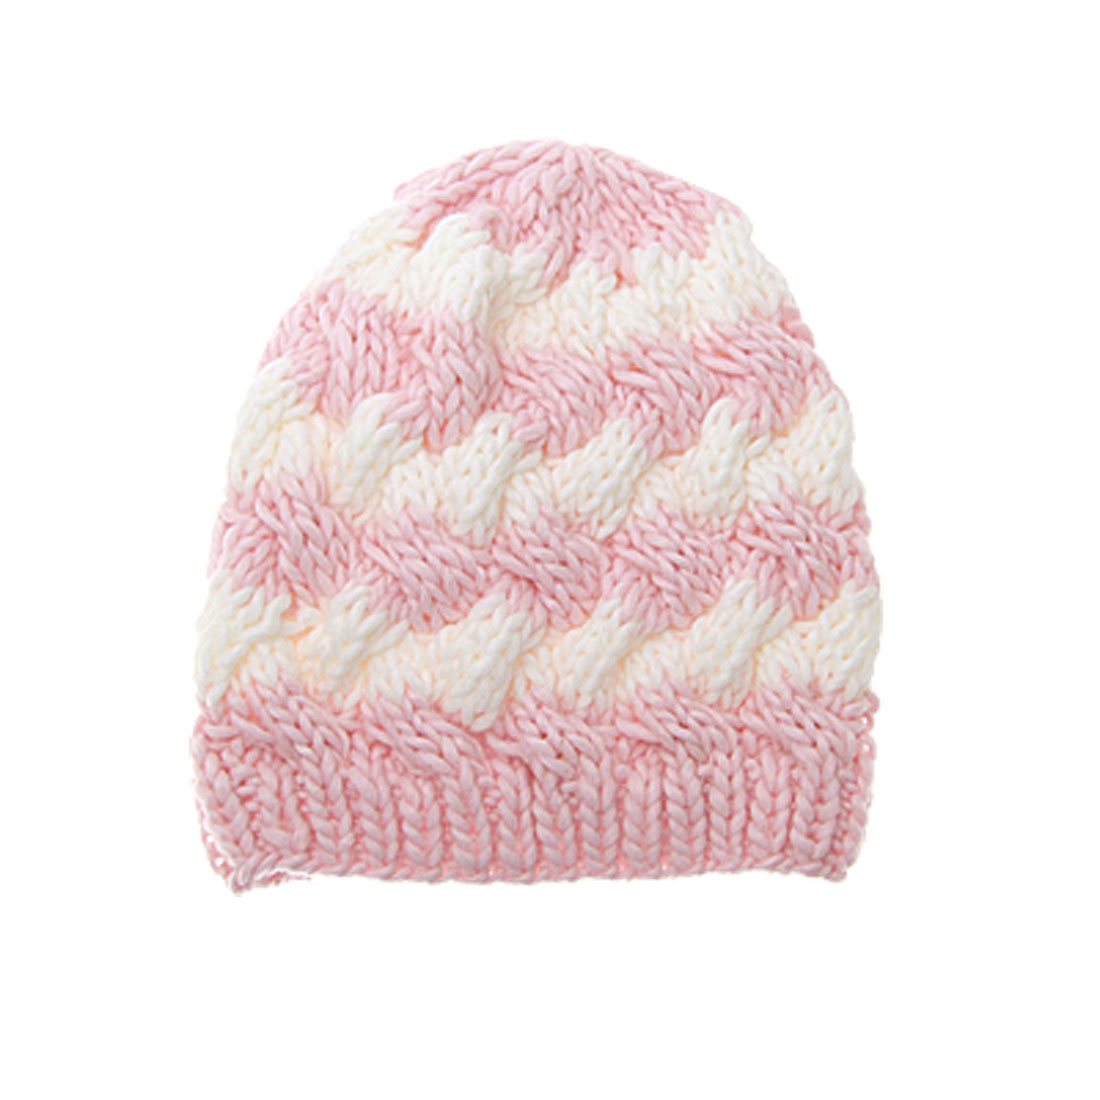 Ladies Pink White Beanie Cap Warm Cable Knit Skull Hat